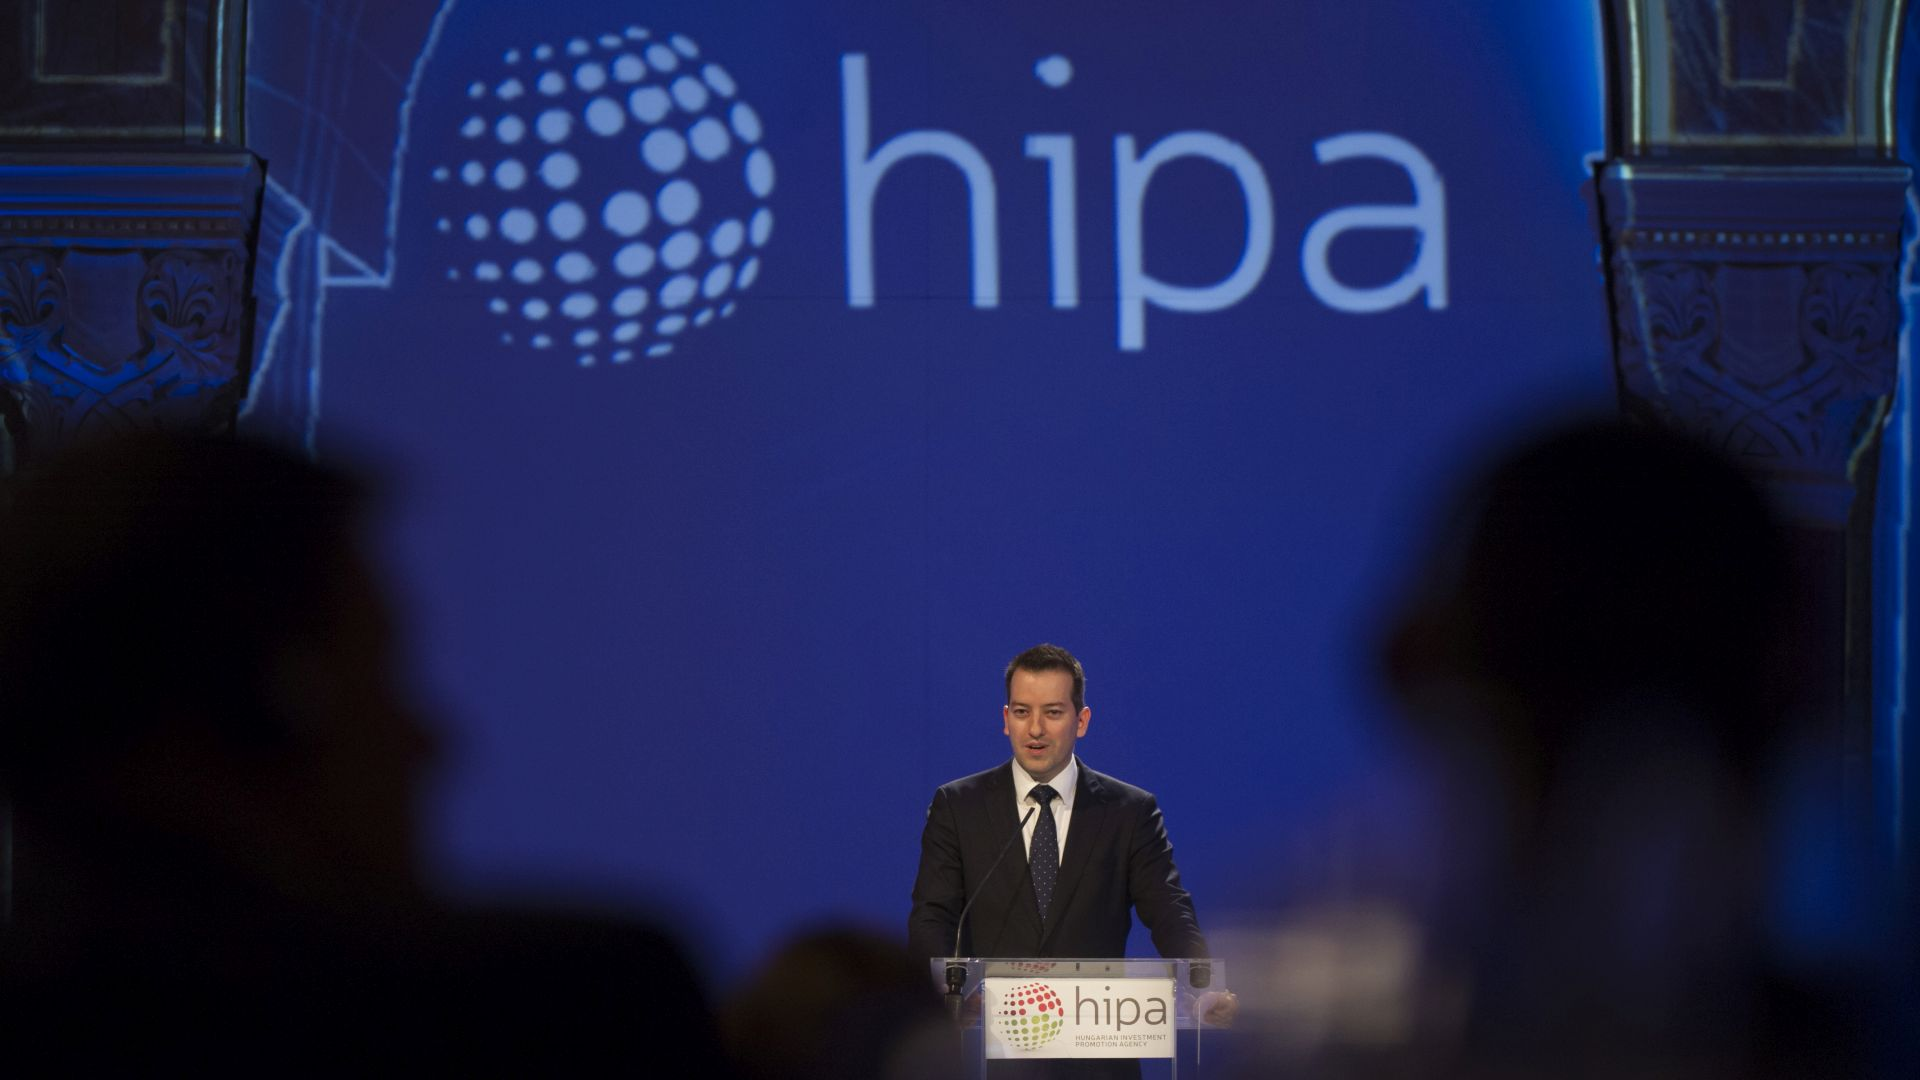 Róbert Ésik, President of HIPA delivering his speech